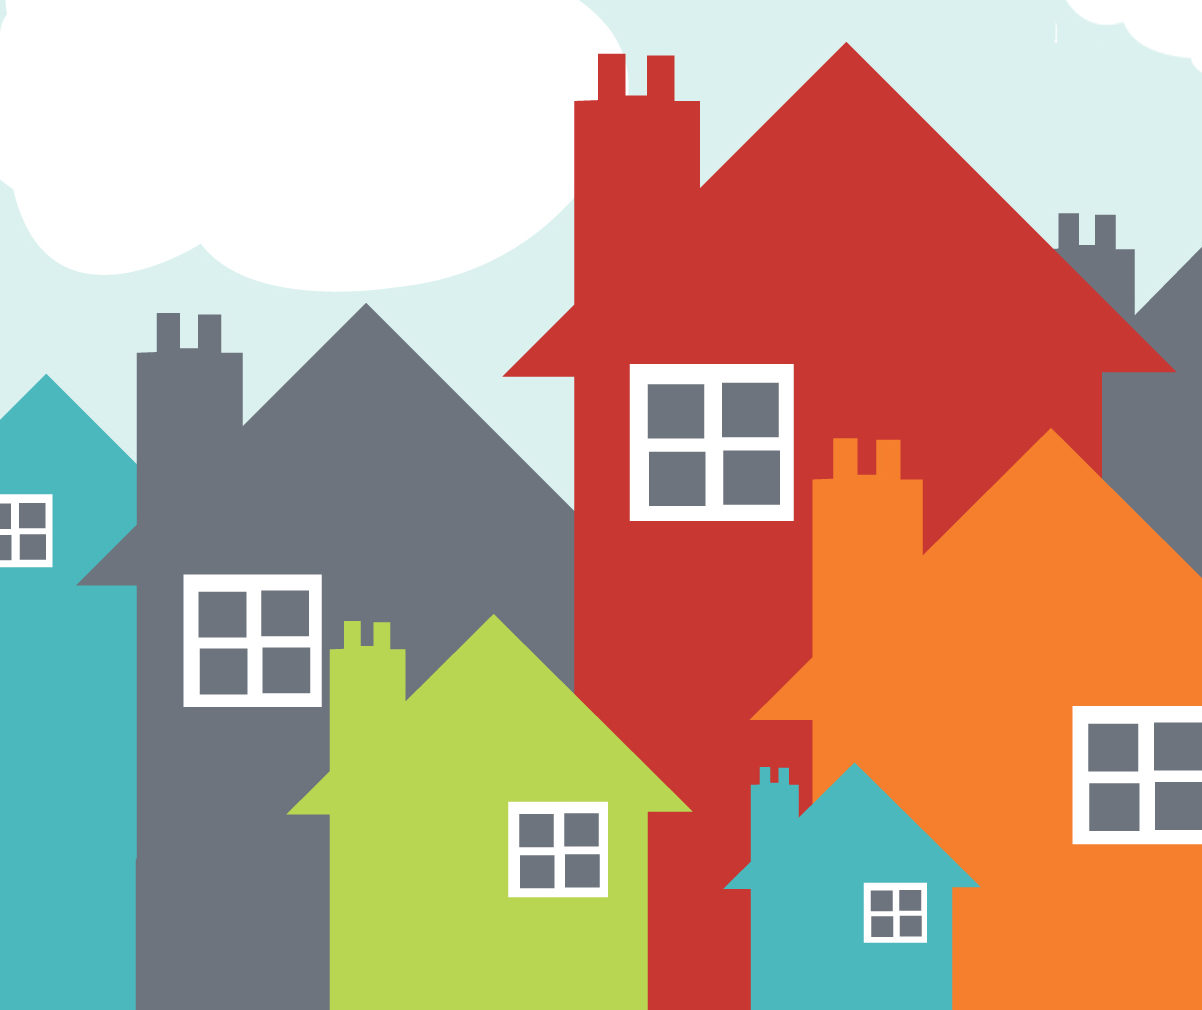 An illustration of houses in various sizes and colors.